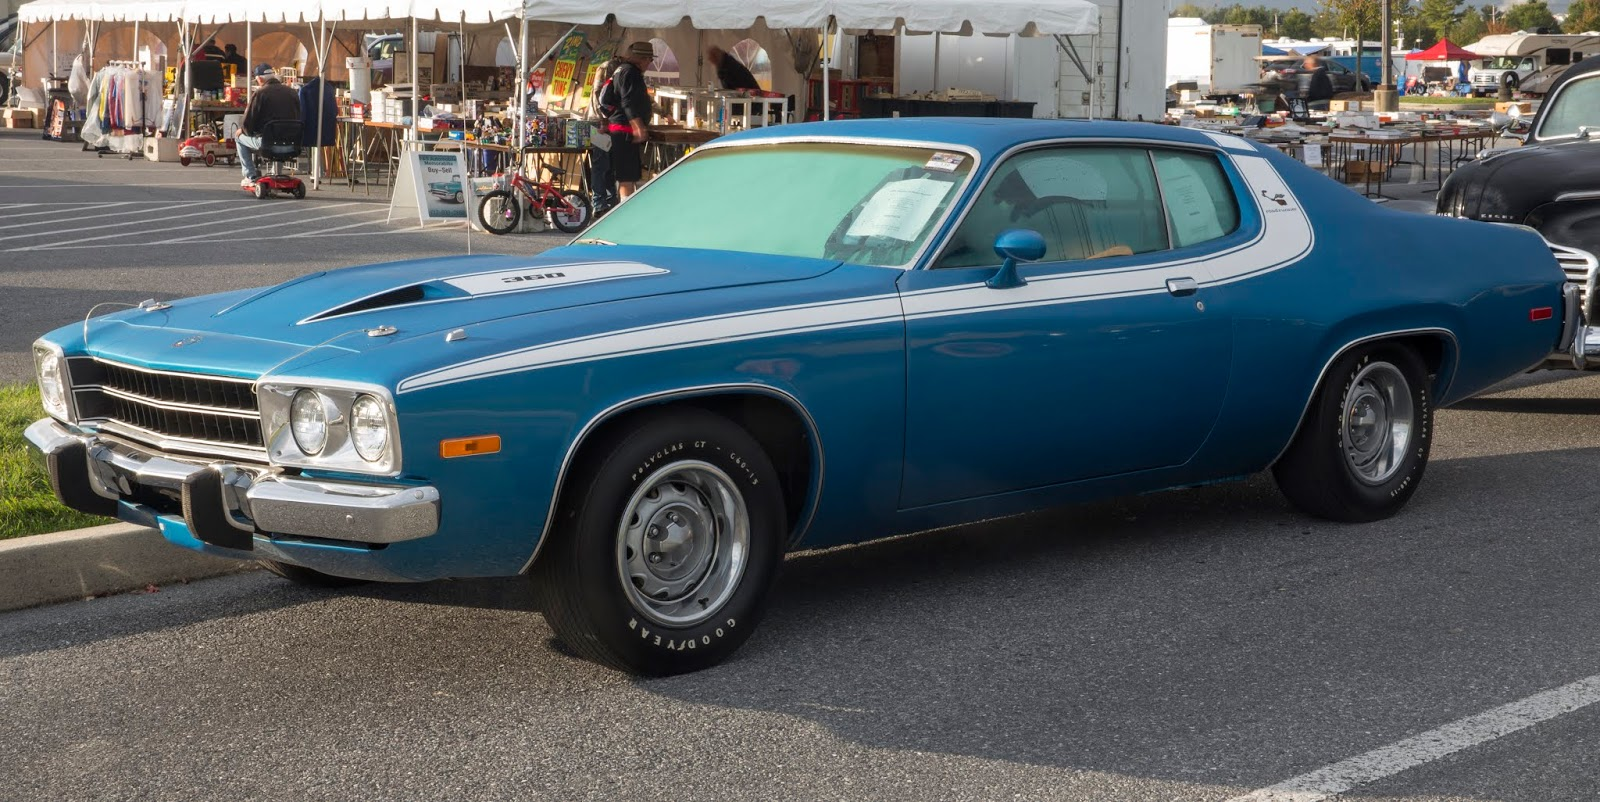 1974 Plymouth Road Runner 360 Lucerne Blue252C front left 2528Hershey 20192529 Το θρυλικό Road Runner της Plymouth